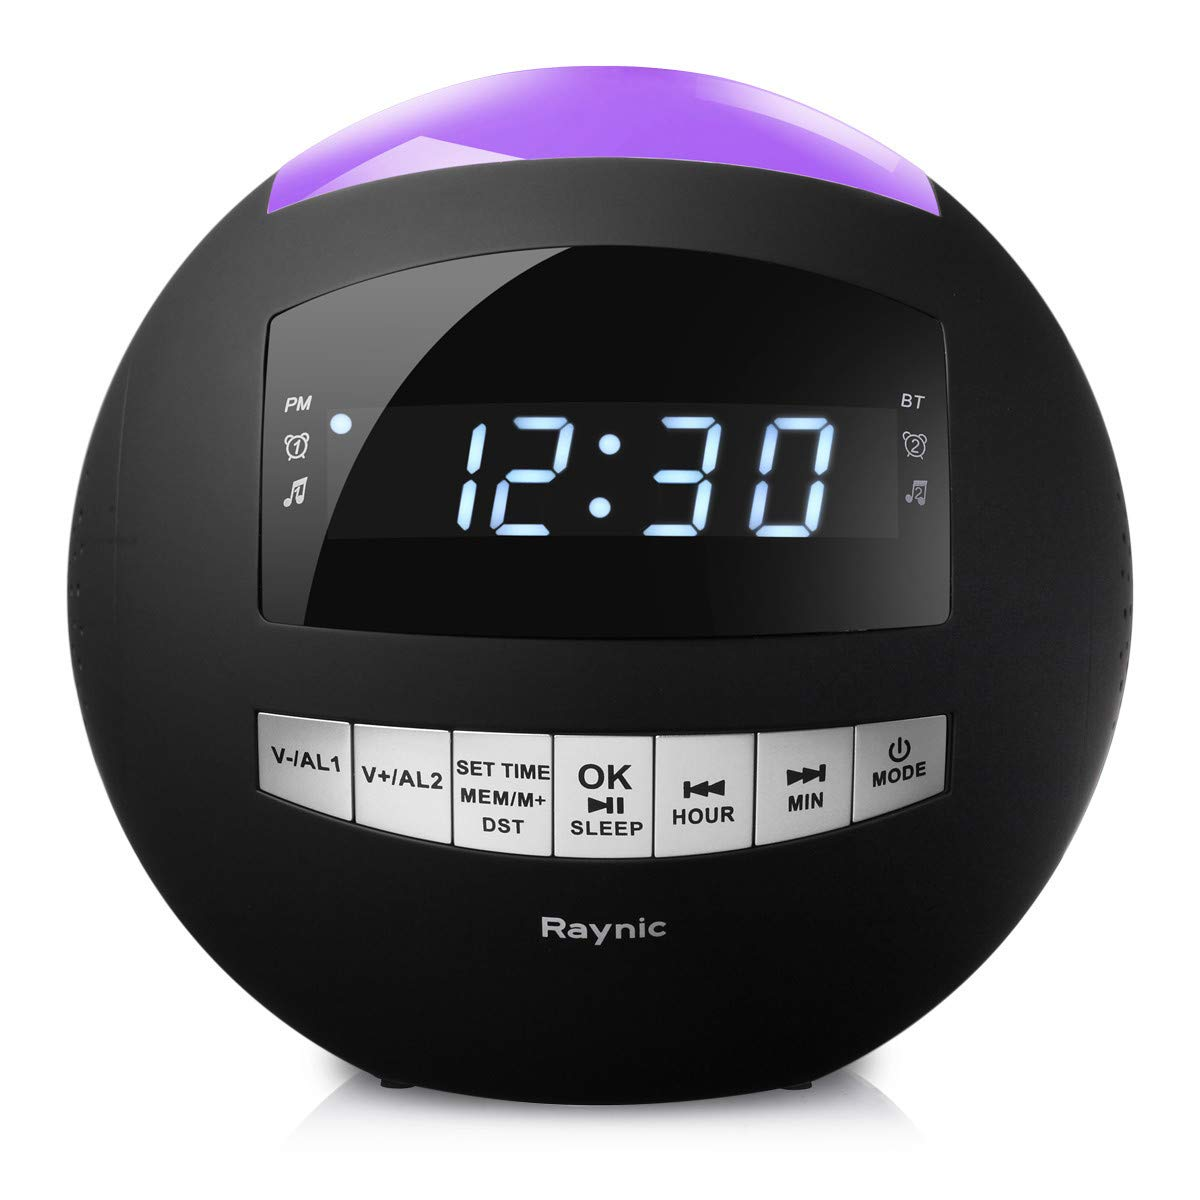 Absolutely amazing clock radio!